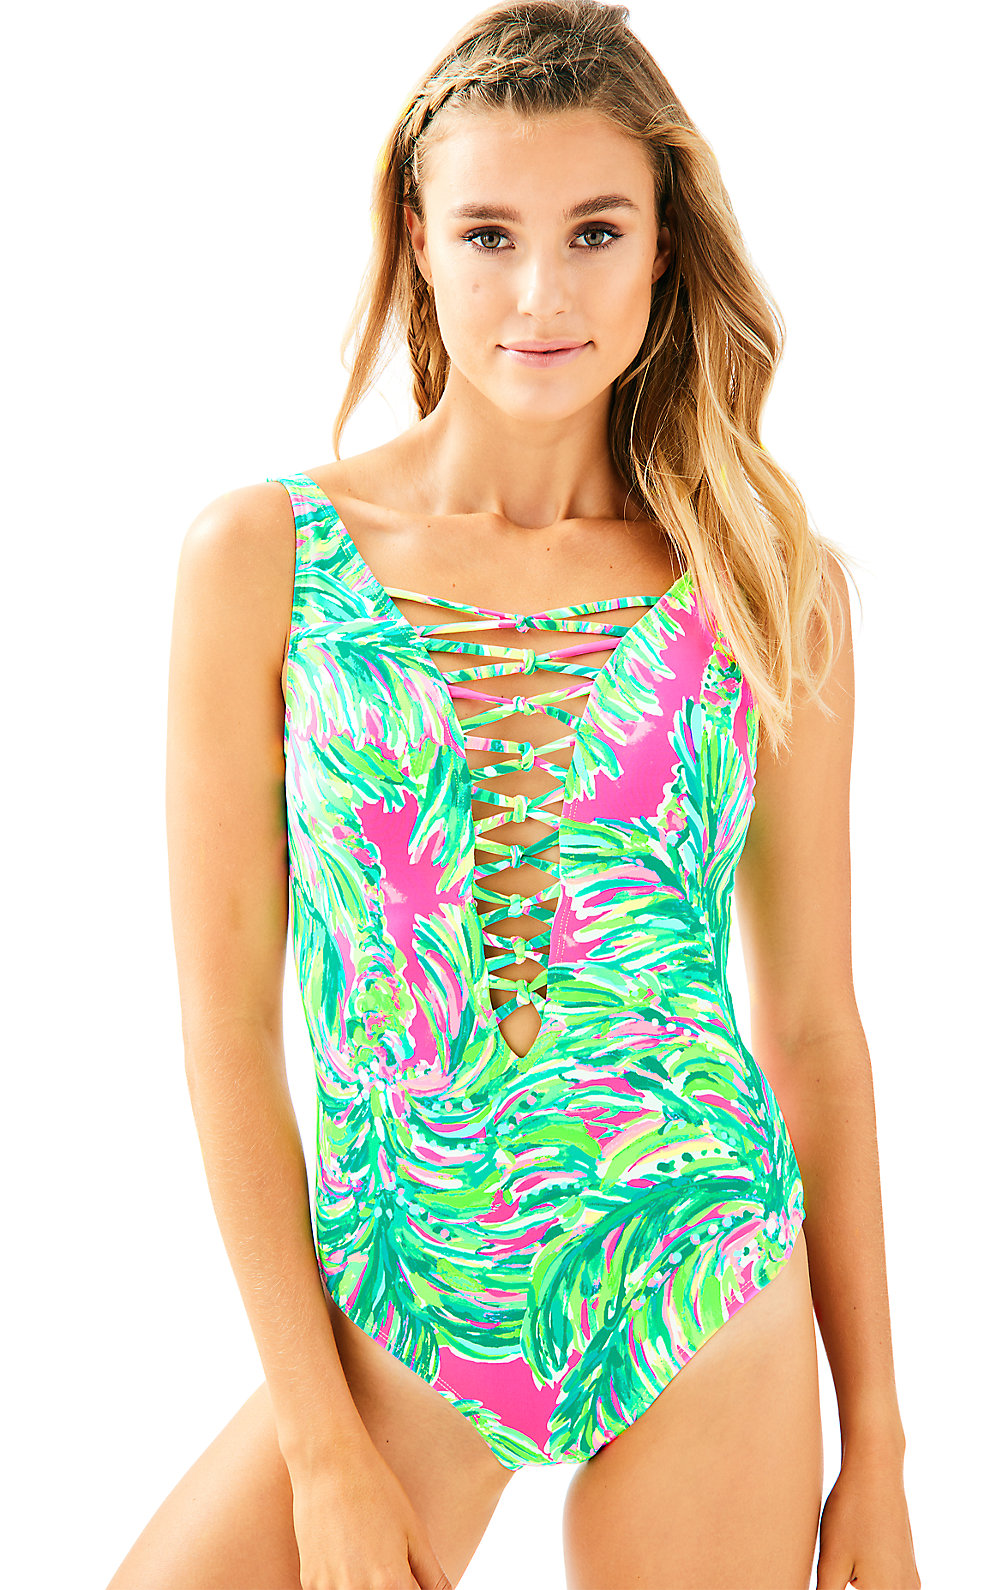 Lilly Pulitzer Lilly Pulitzer Isle Lattice One Piece Suit